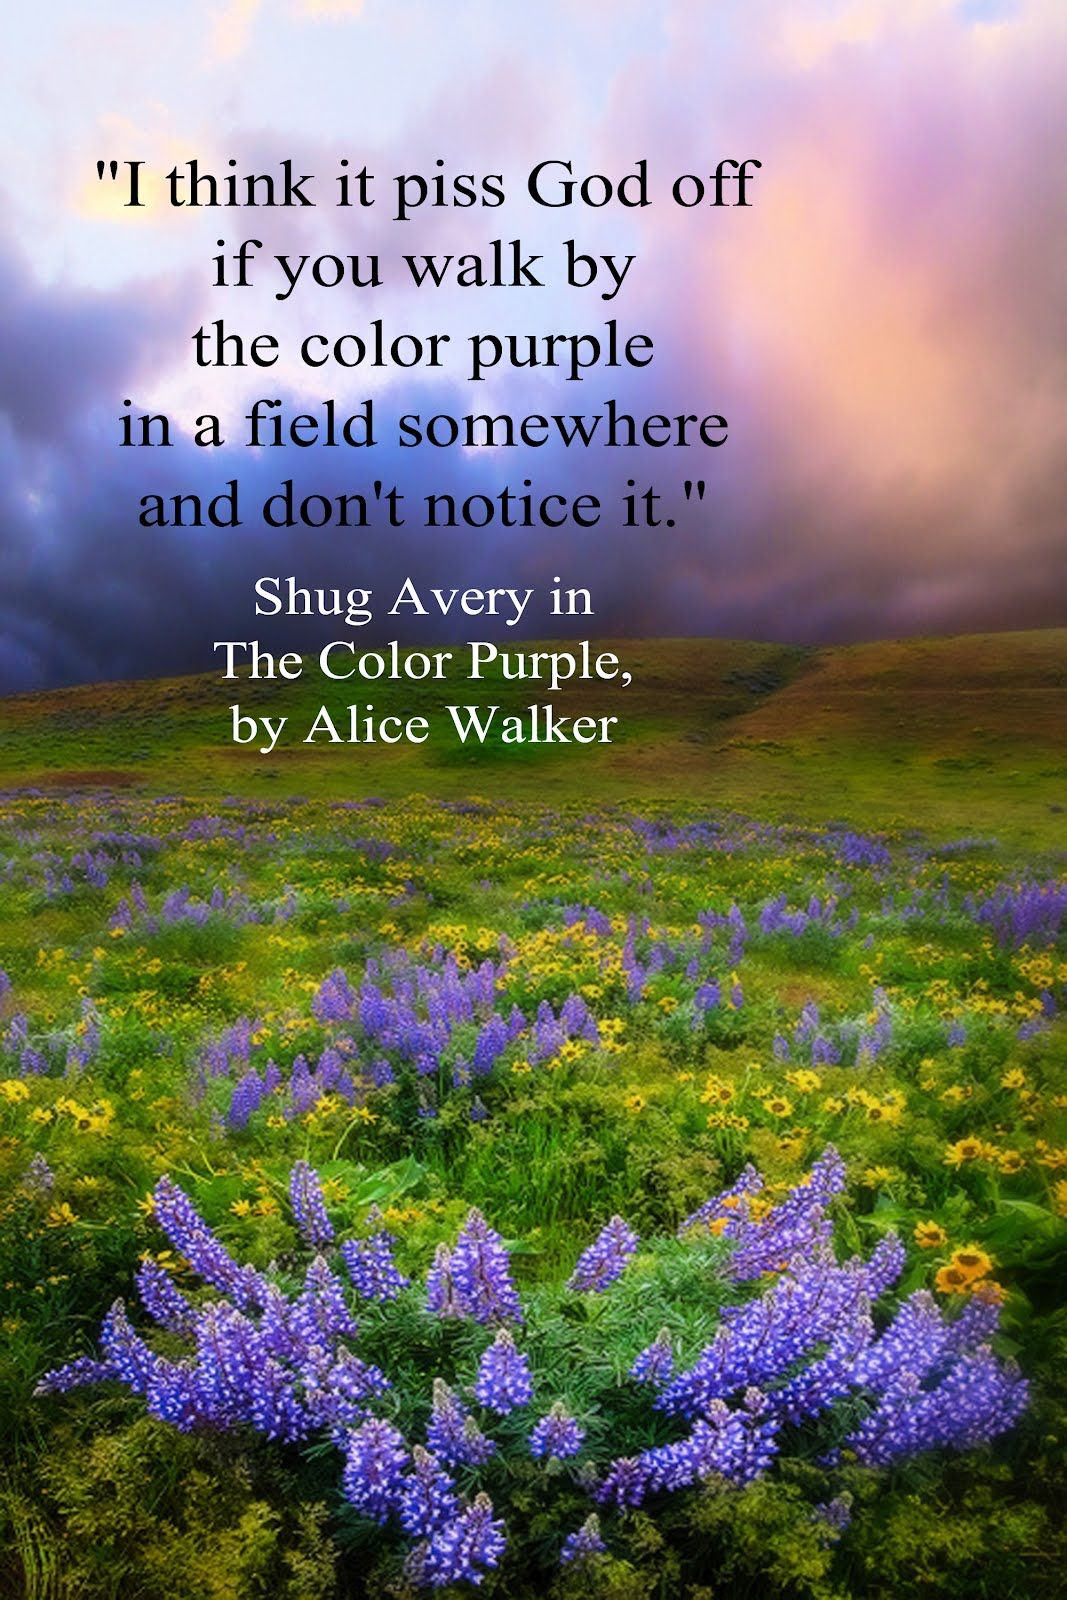 an analysis of literary devices in the color purple by alice walker In the color purple, celie is abused by her father, and husband she leaves her father by marrying mr _____, and leaves mr _____ after he abuses her.